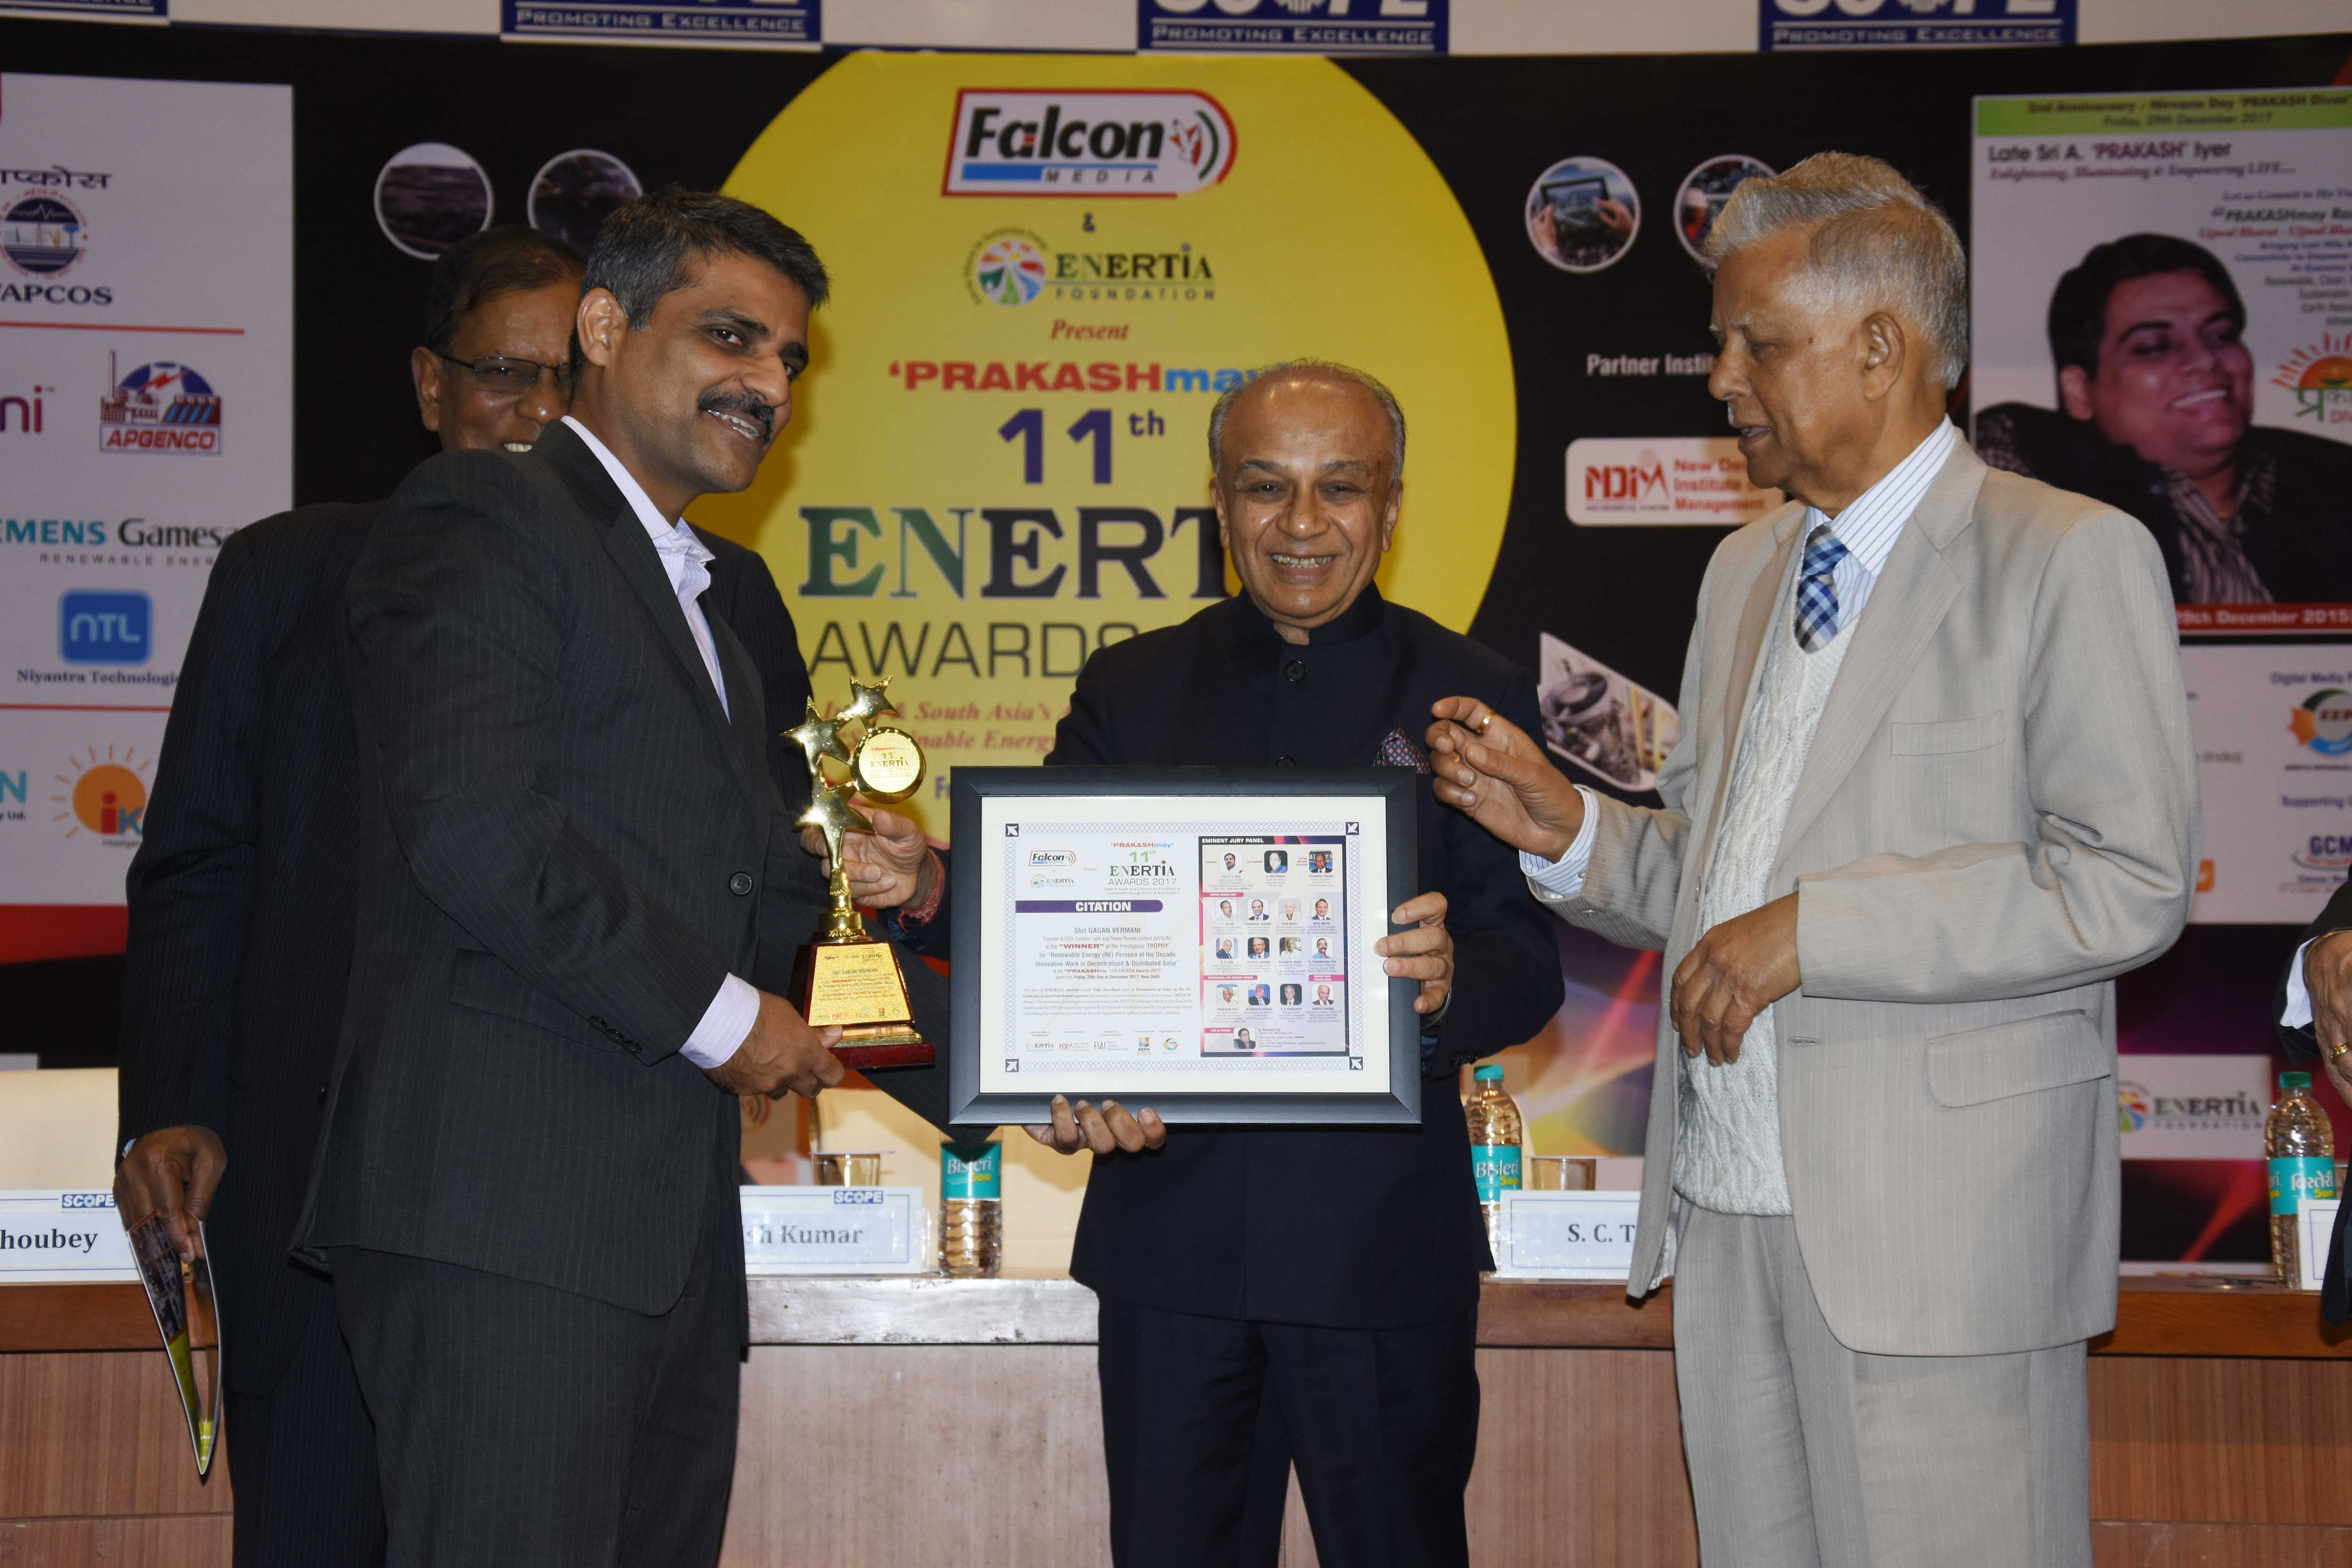 ENERTIA Award recognizes 'Power and Energy Persona of the Decade'